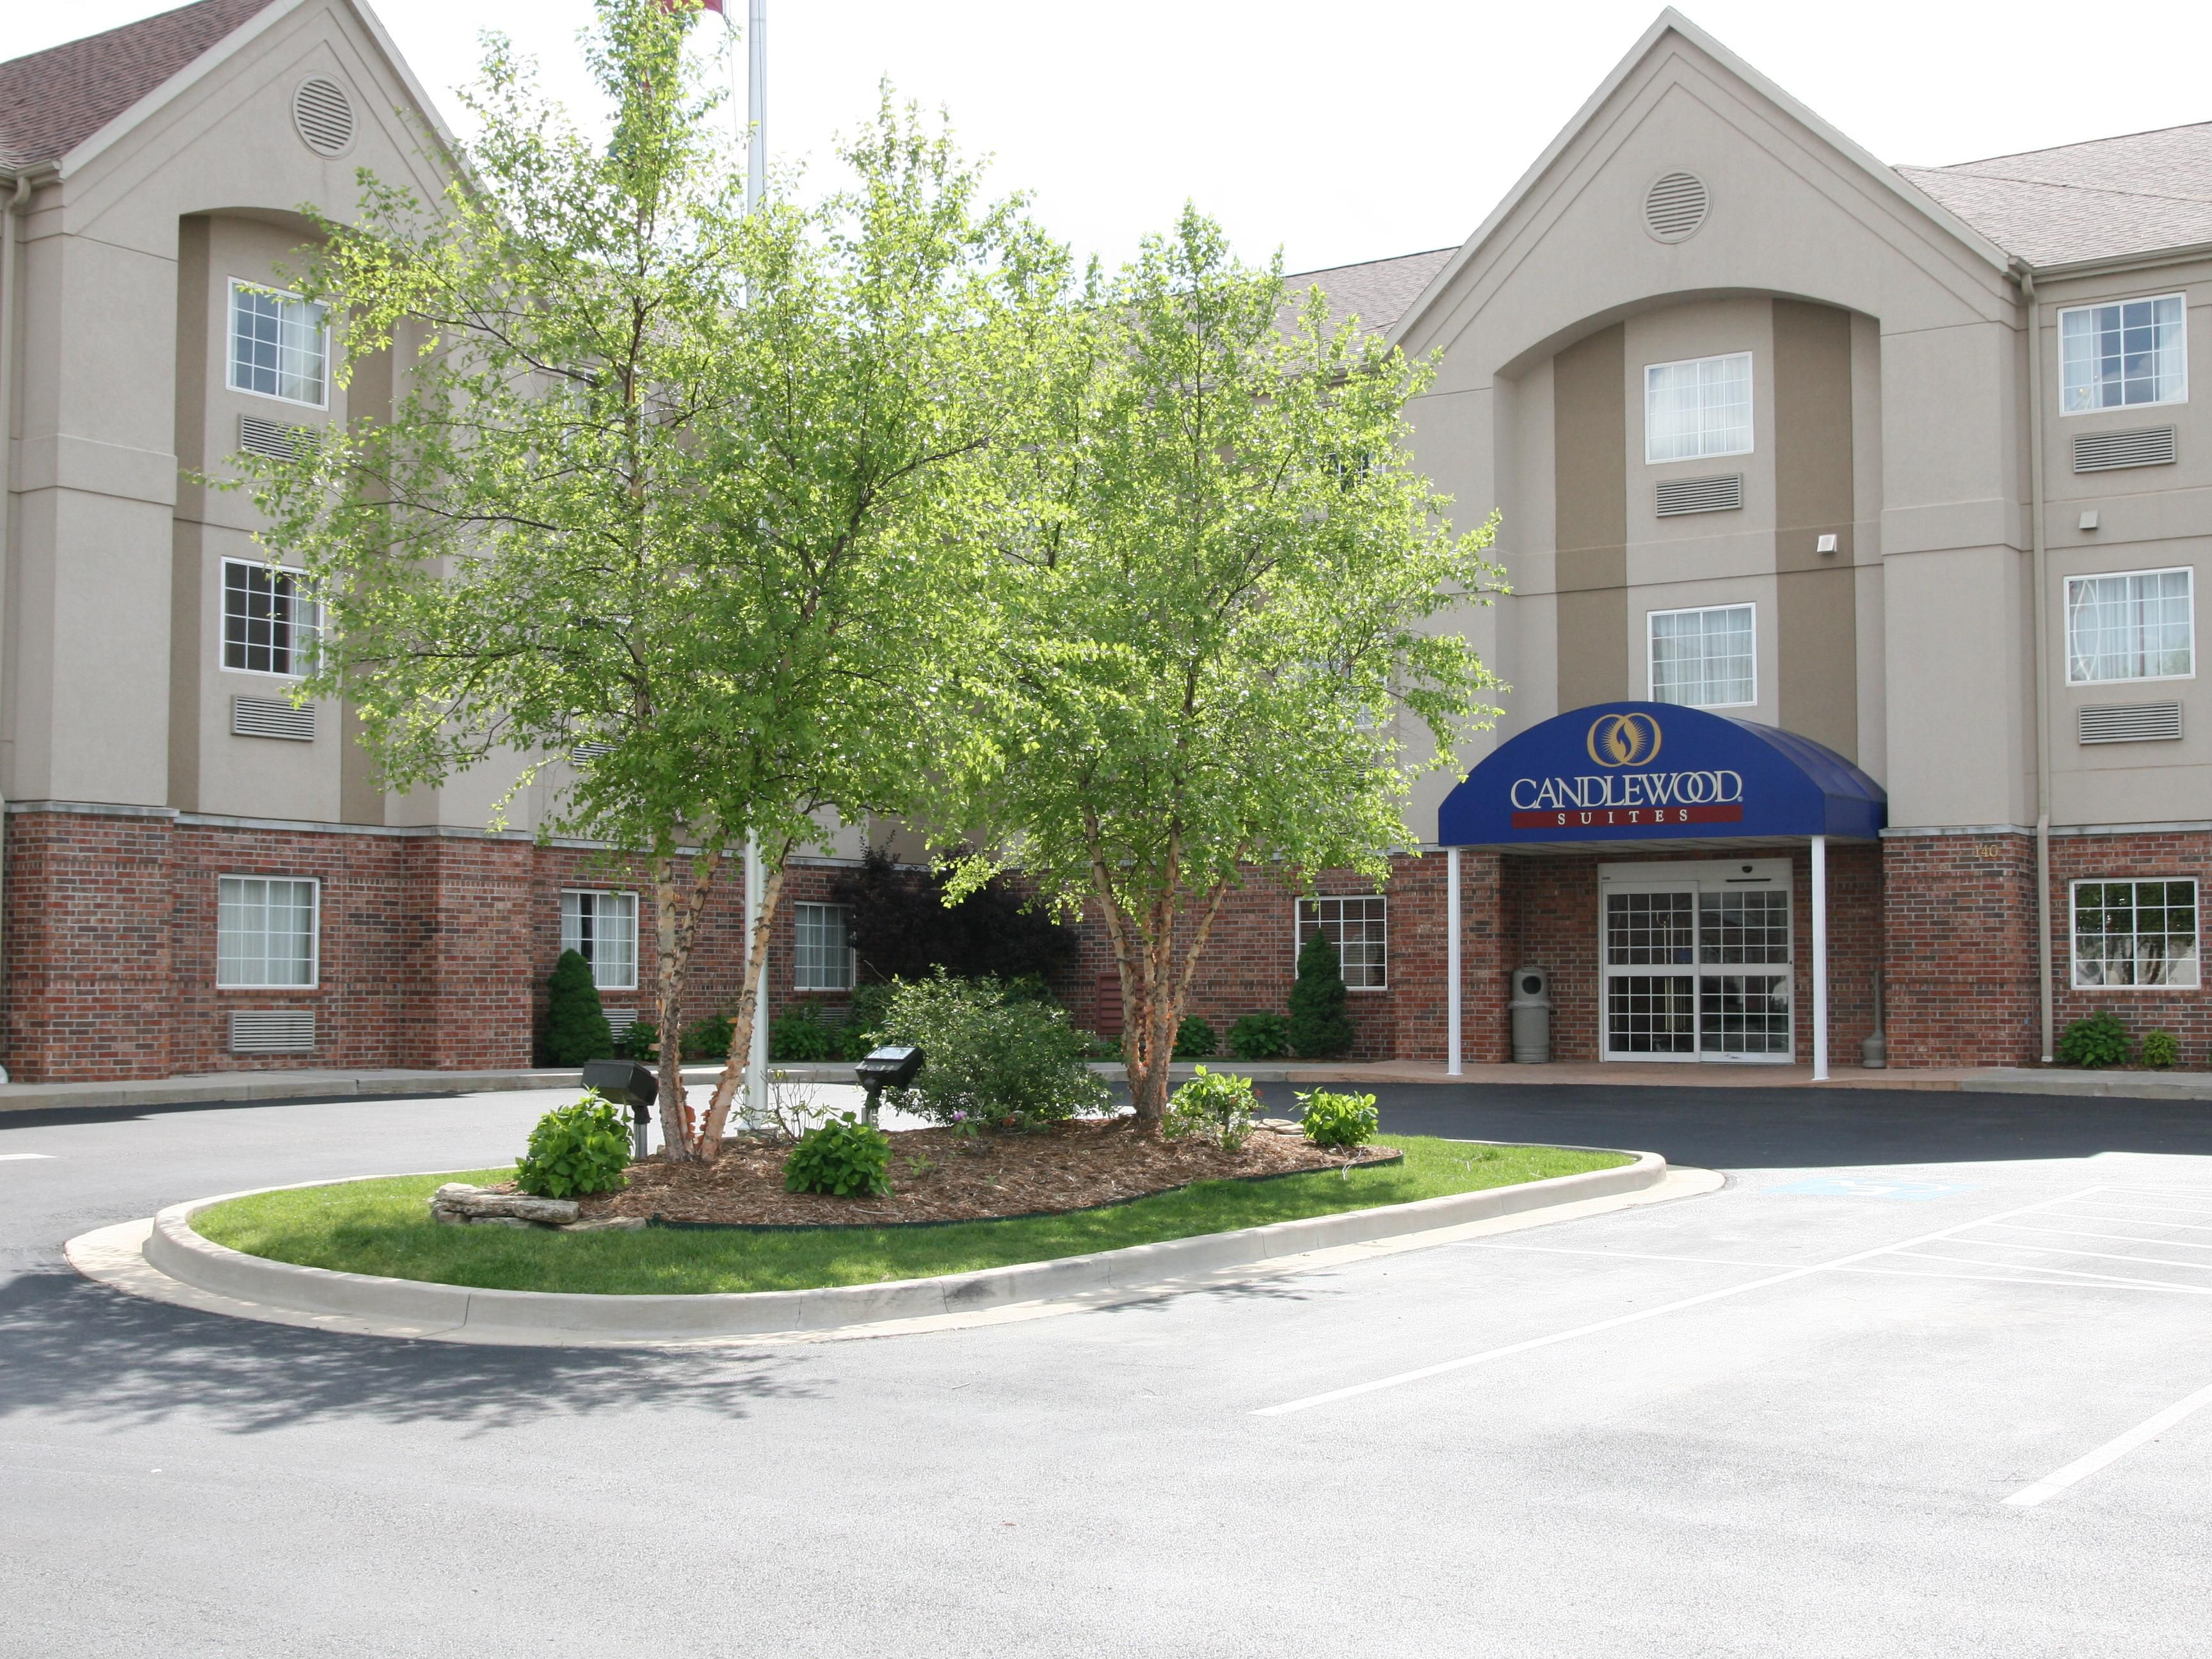 west des moines hotels candlewood suites des moines extended stay